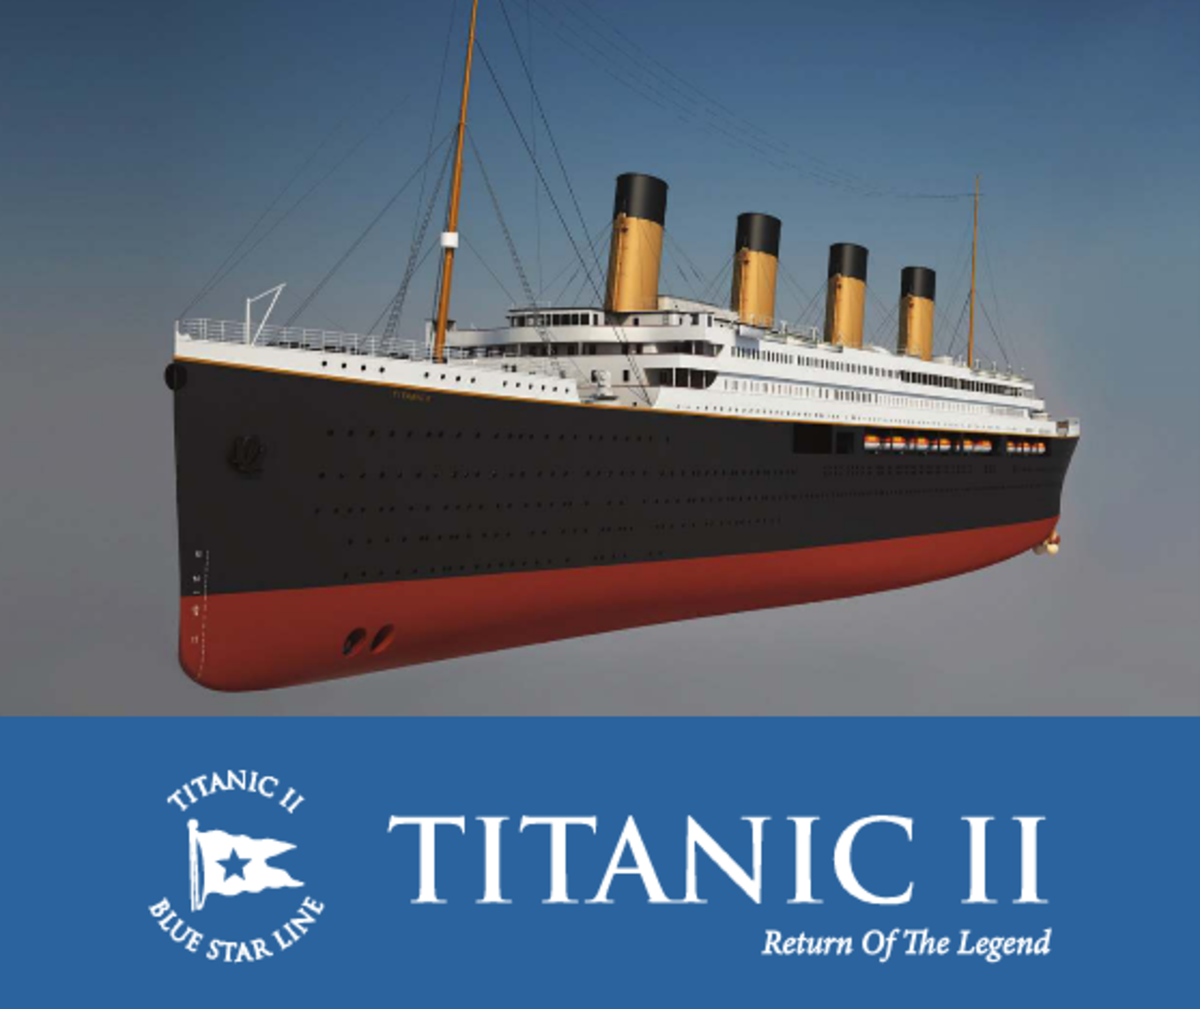 Would you sail on Titanic 2?